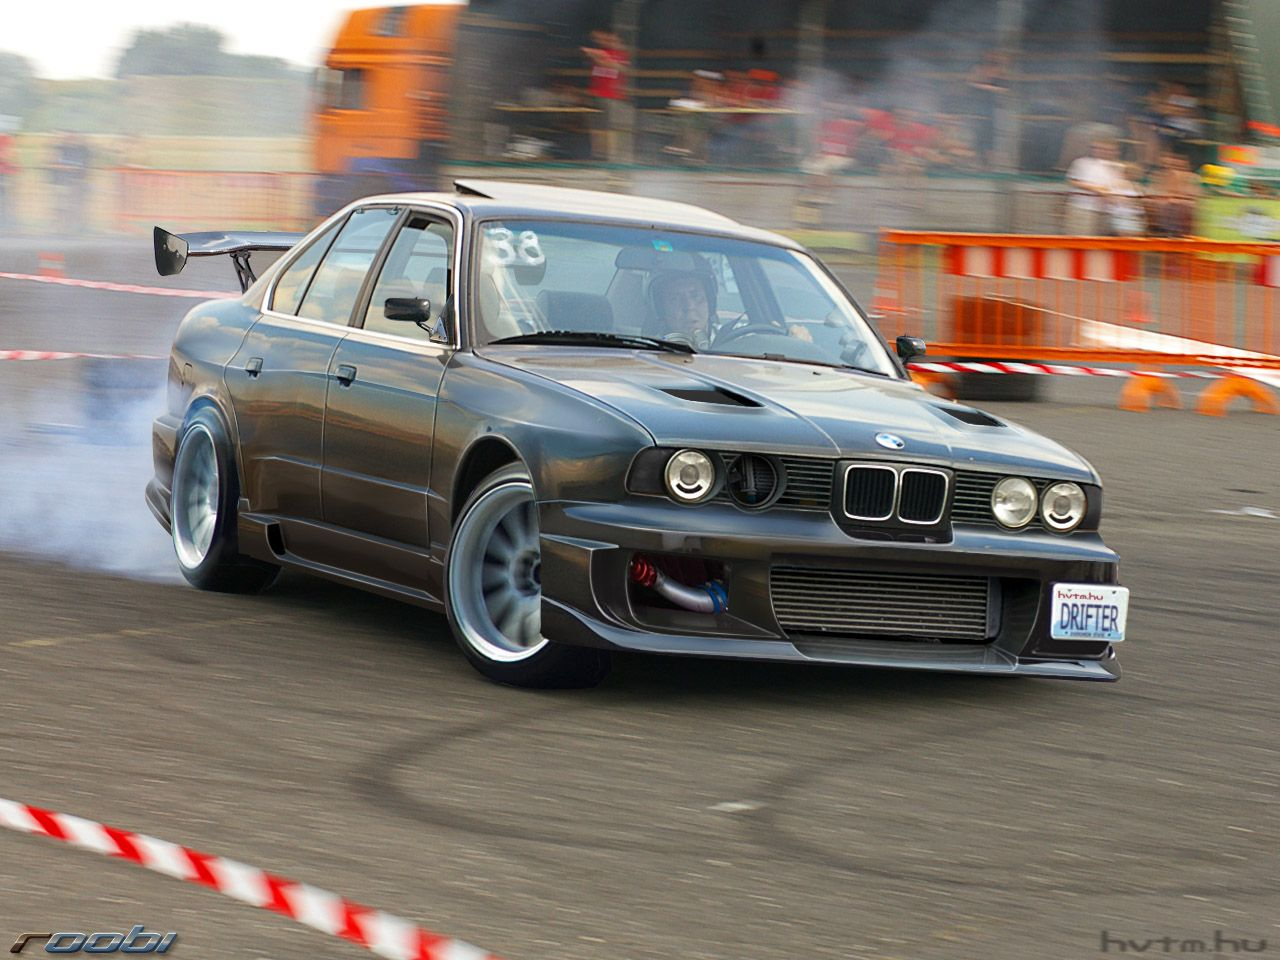 56 best e34 images on pinterest | bmw e34, bmw cars and bavarian